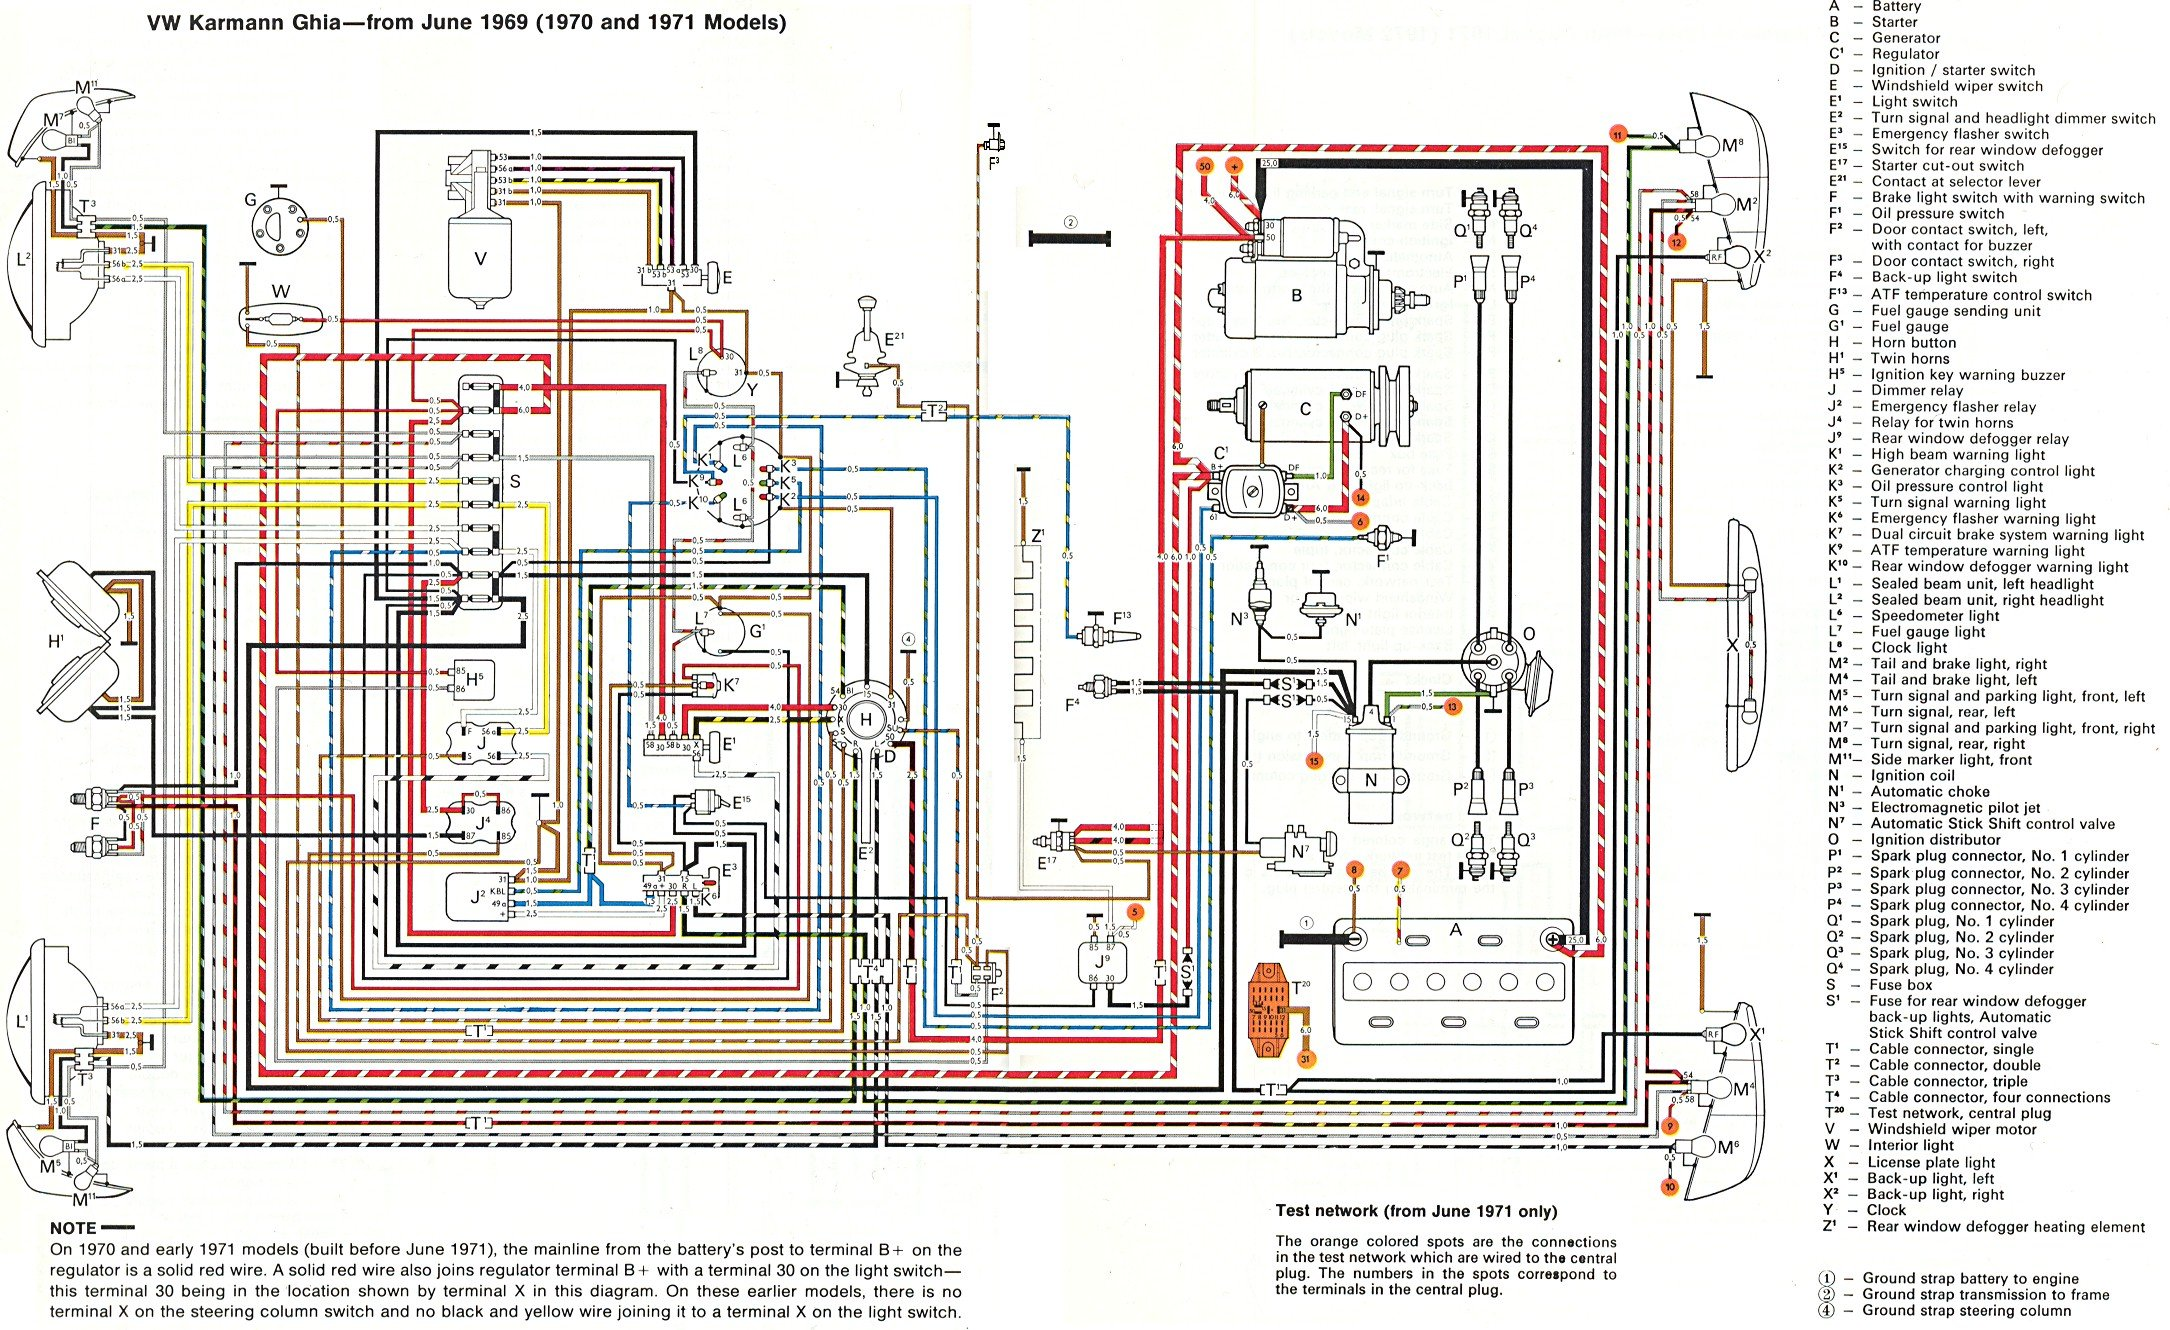 1970 Chevelle Tachometer Wiring Simple Guide About Diagram 67 Thesamba Com Karmann Ghia Diagrams Tach 70